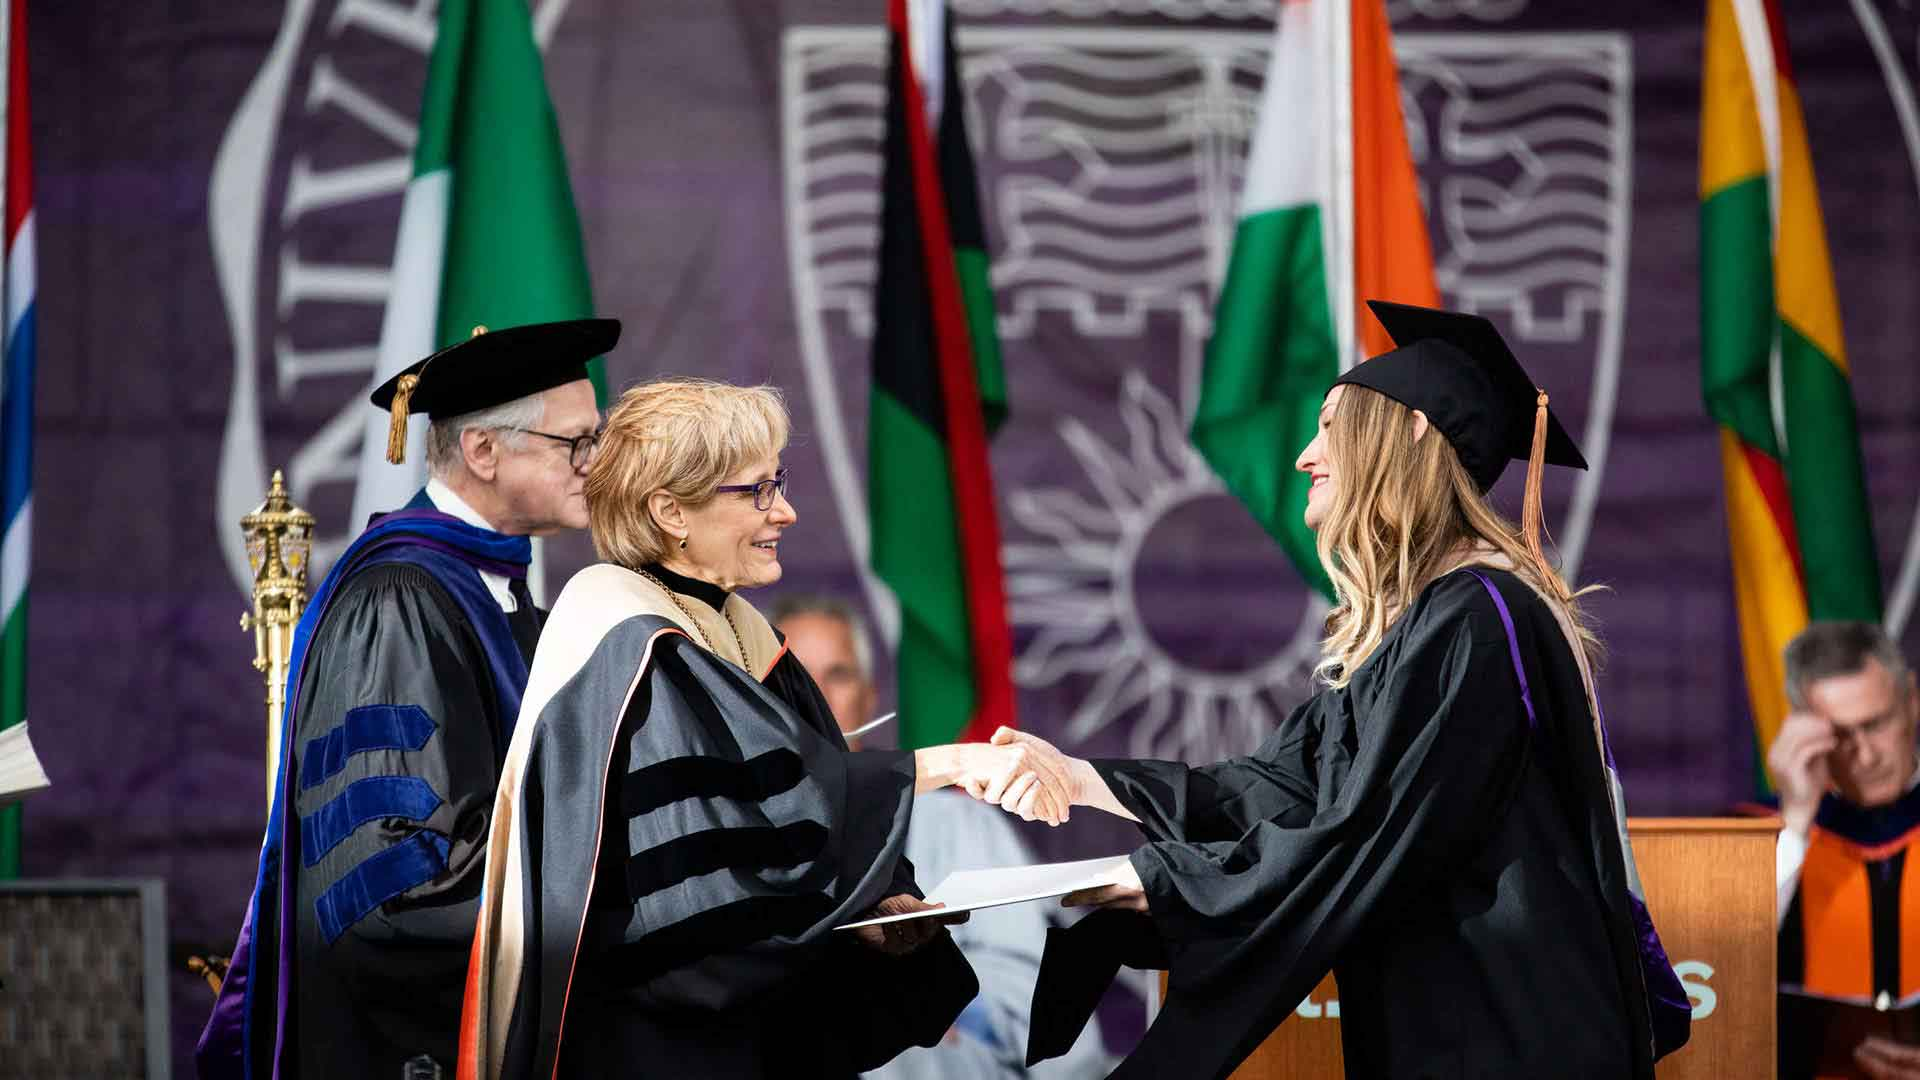 A student shakes hands with President Julie Sullivan as she receives her degree during a commencement ceremony.